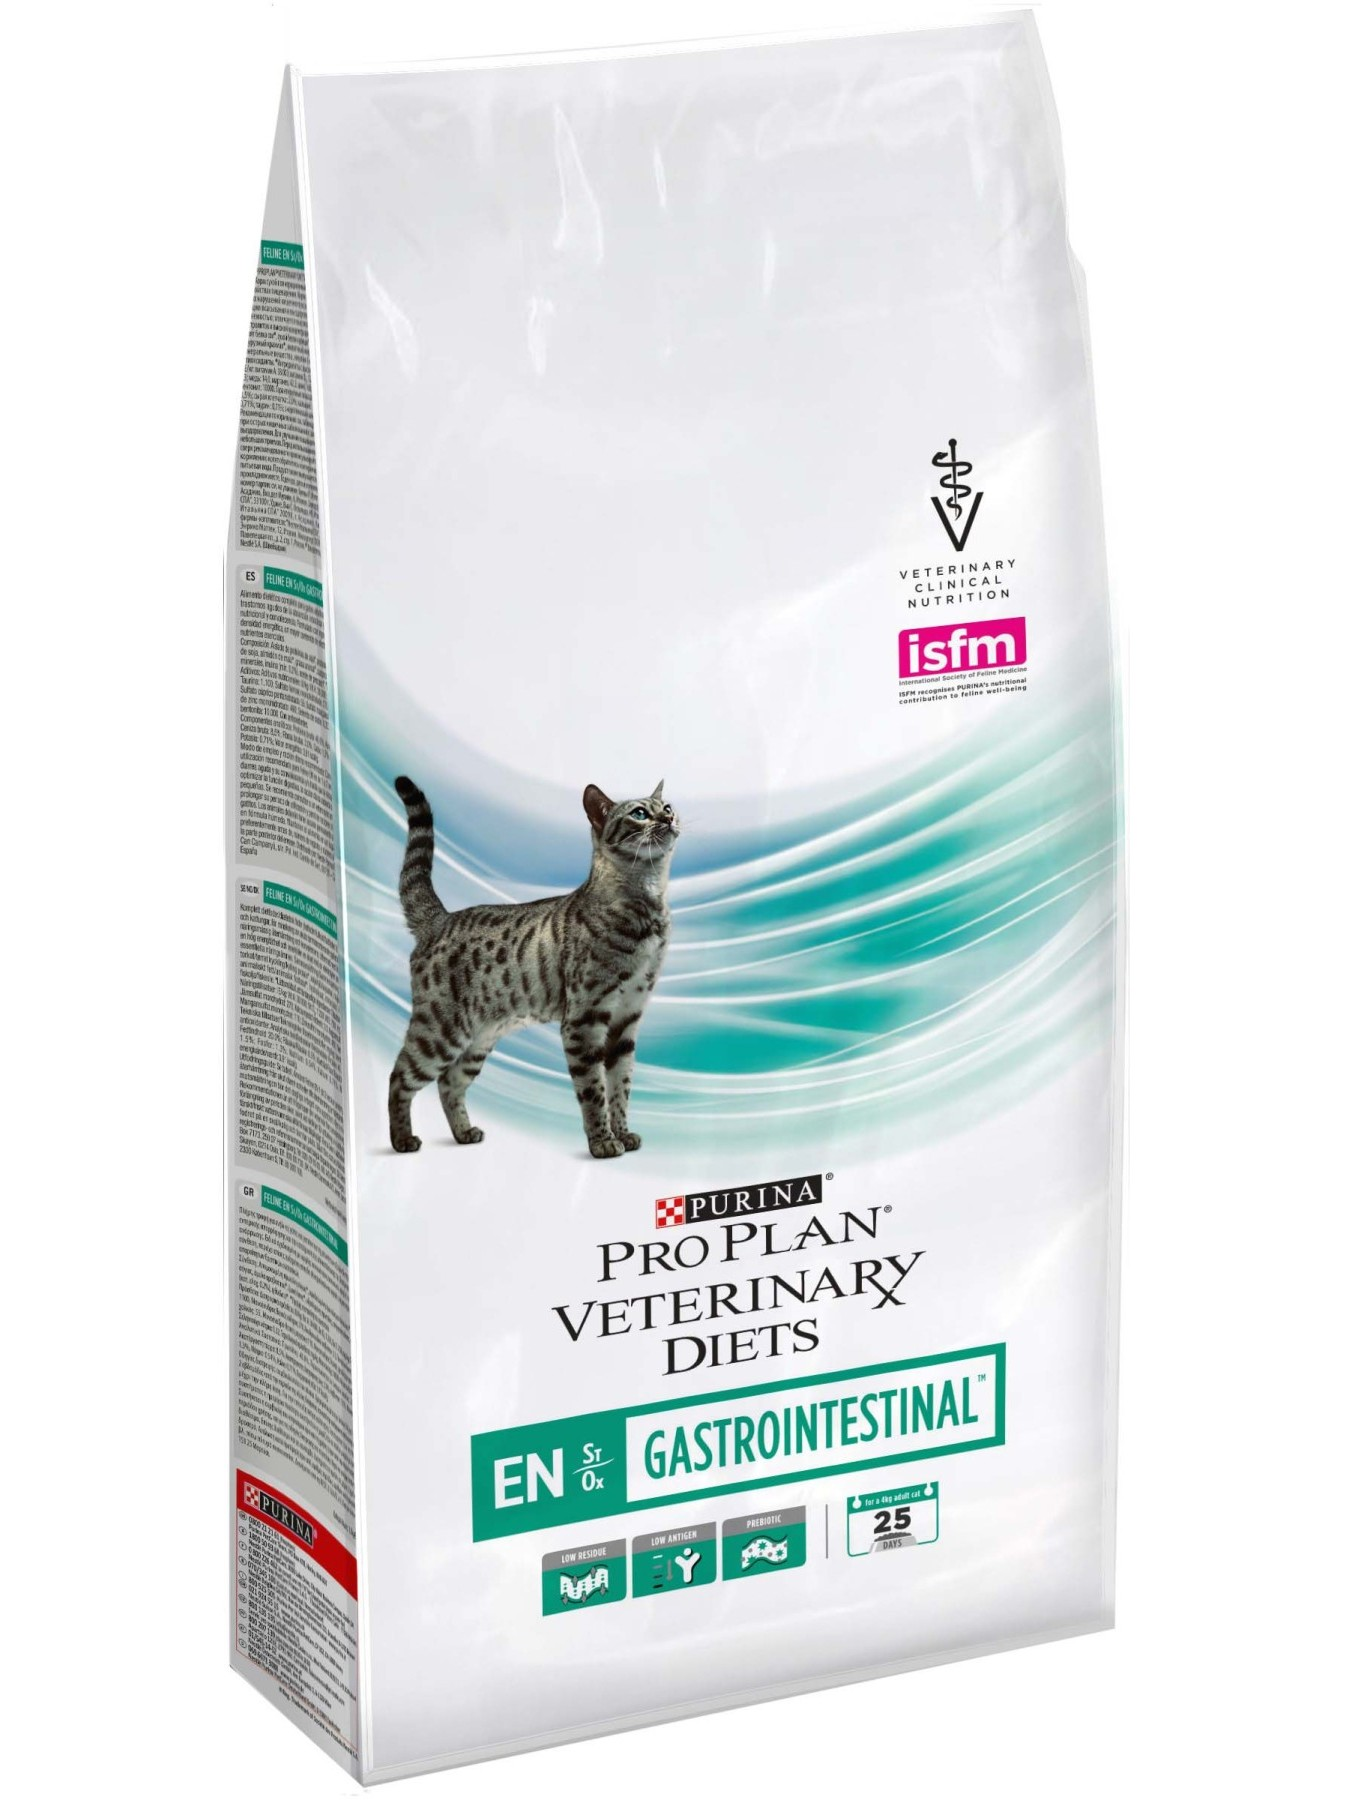 Pro Plan Veterinary Diets EN Gastrointestinal Food For Cats With Pathology GASTROINTESTINAL TRACT, 400g